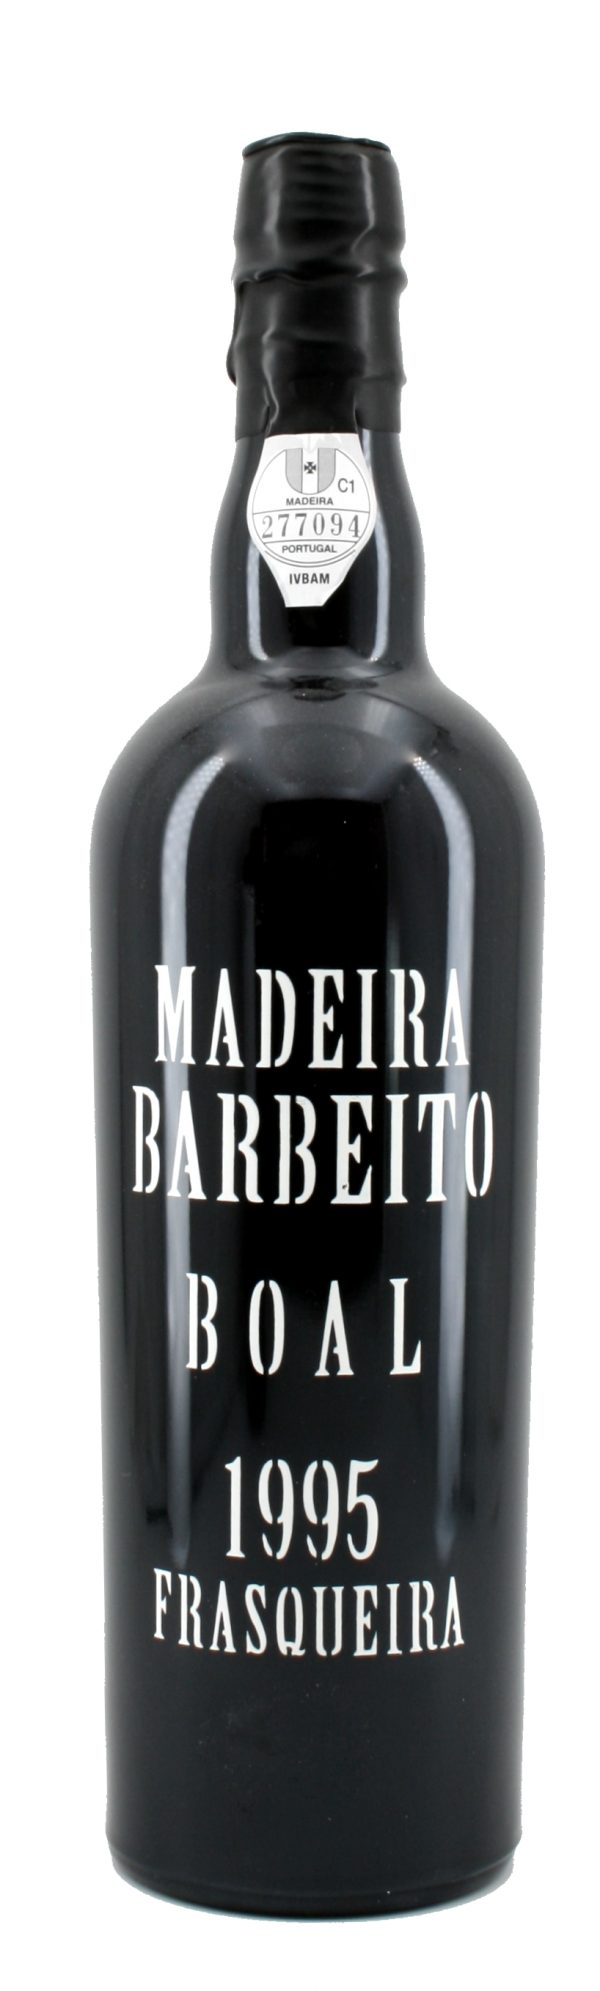 Boal Medium Sweet Madeira 1995